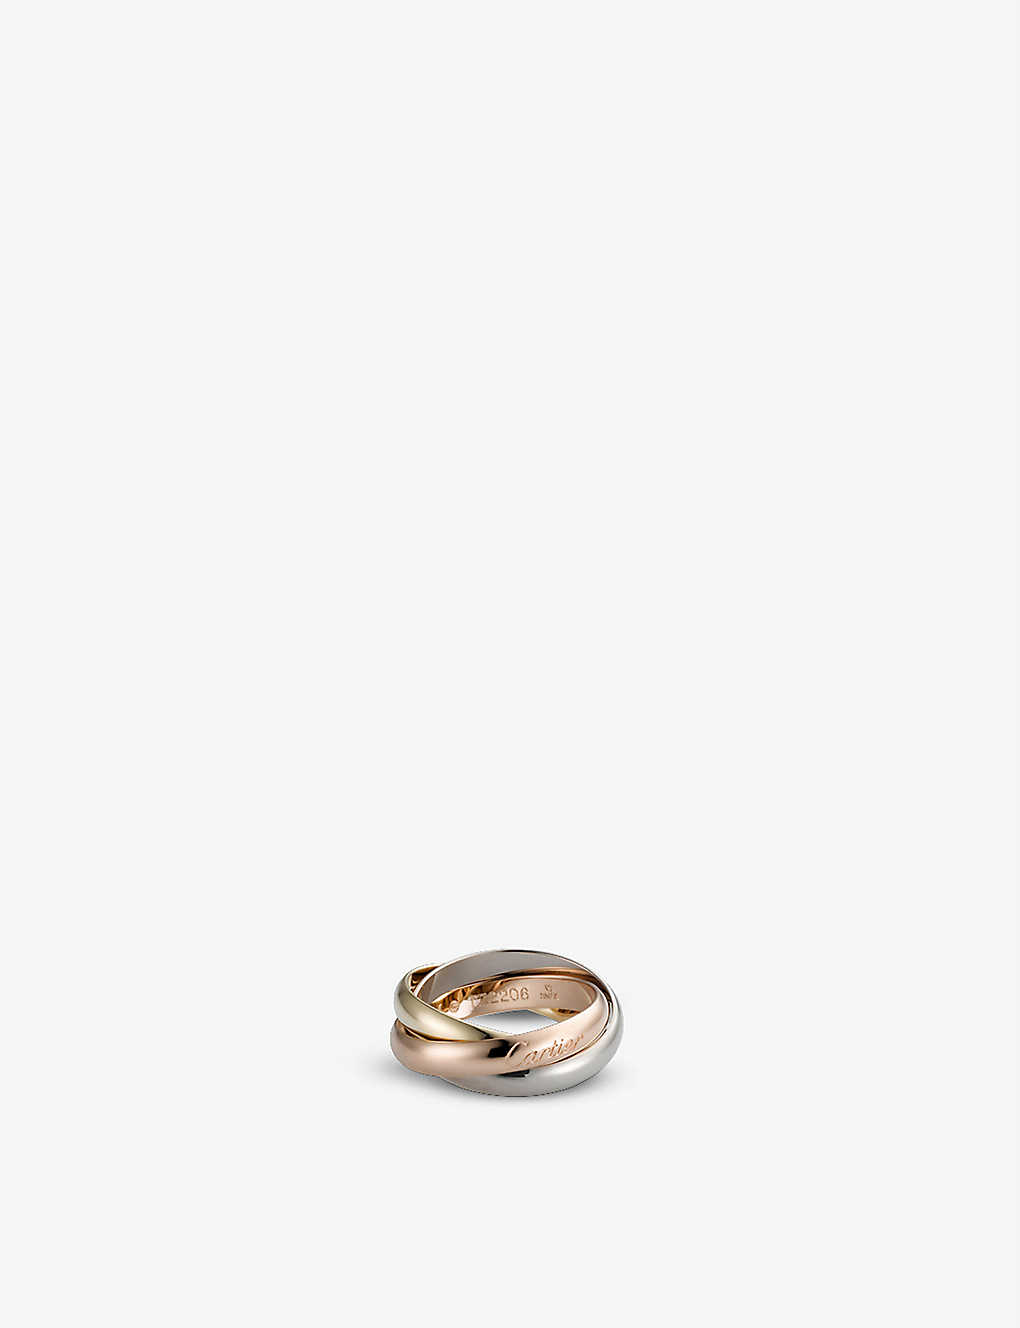 Trinity De Cartier 18ct White Gold Yellow Gold And Pink Gold Medium Ring